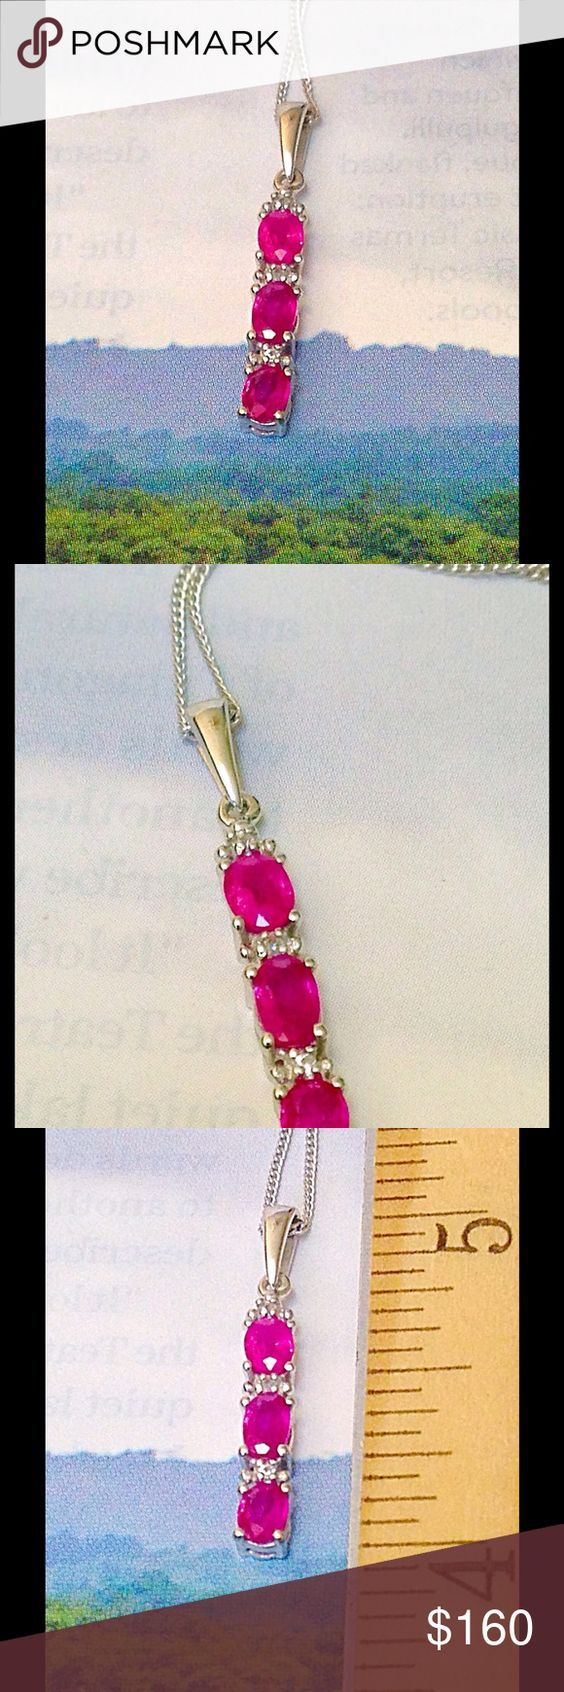 """Burmese Ruby Pendant """"King of Rubies"""" Burmese Ruby Pendant With Chain (20 in) Done in Platinum Over .925 Sterling Silver Nickel Free accented with White Zircon. TGW .95 CTs. Historically Burma (modern-day Myanmar) was a leading producer of rubies for ages. Burmese rubies typically form in deposits of marble. However, years ago the exportation of Burmese Ruby was halted. The exportation was just recently lifted and jewelers are going crazy, as are the prices. Jewelry Necklaces"""